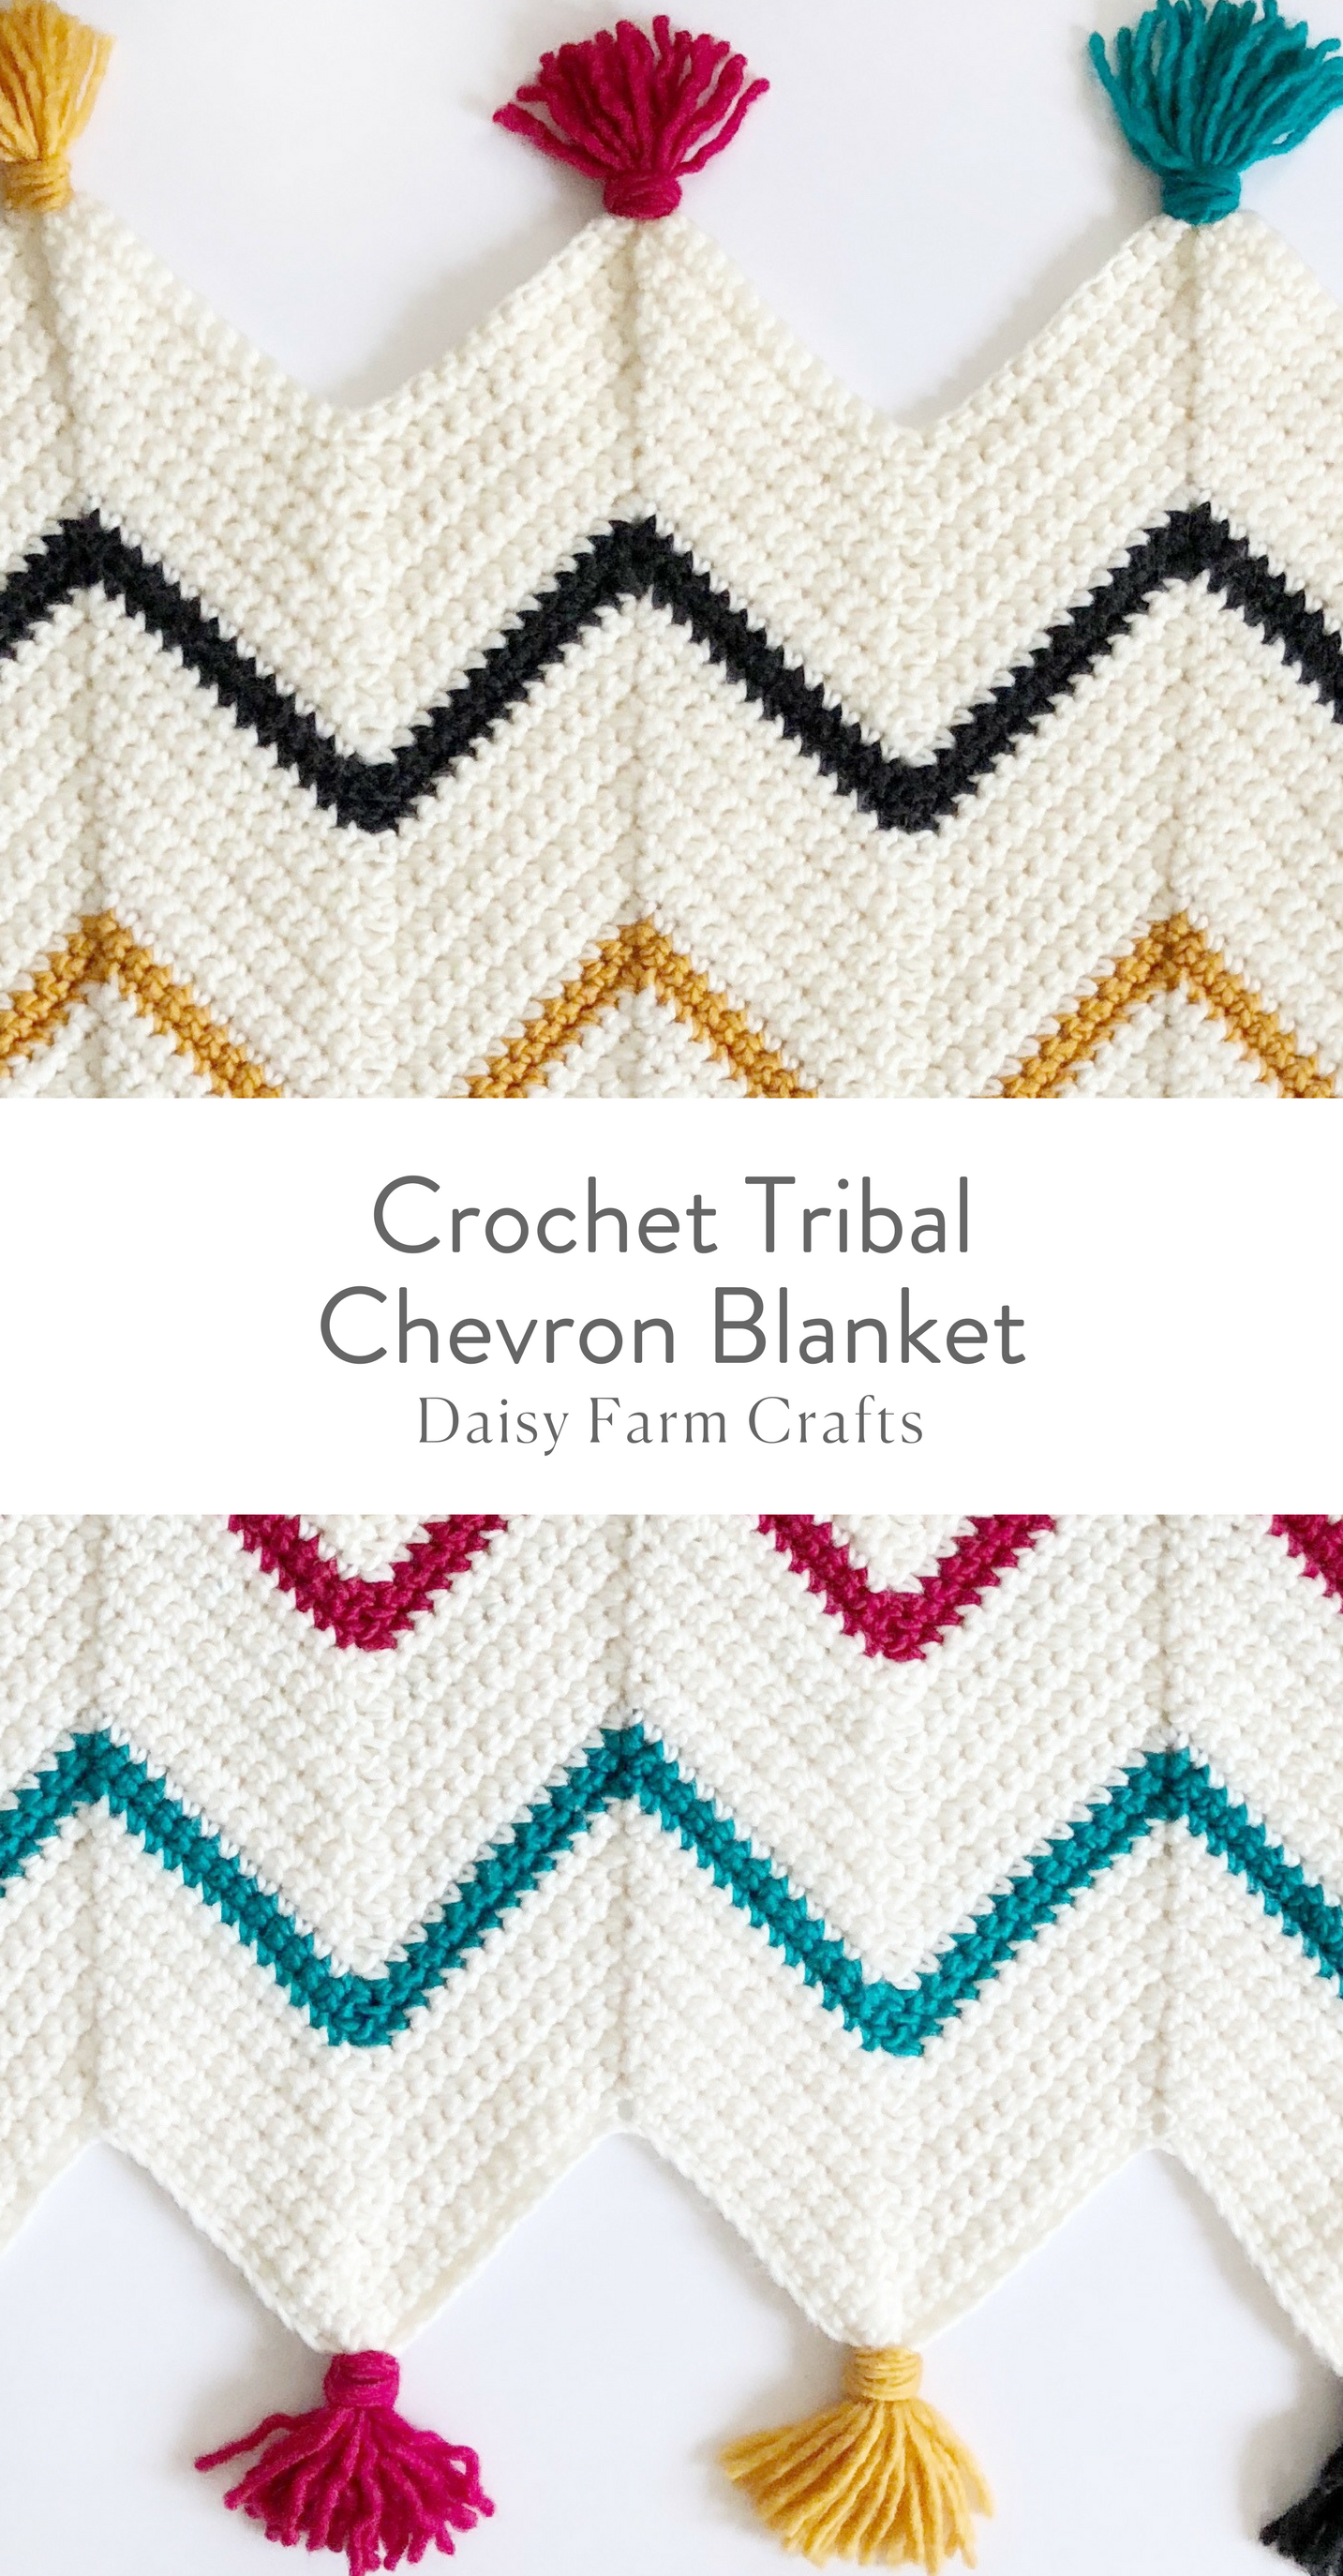 Free Pattern - Crochet Tribal Chevron Blanket #crochetpattern ...